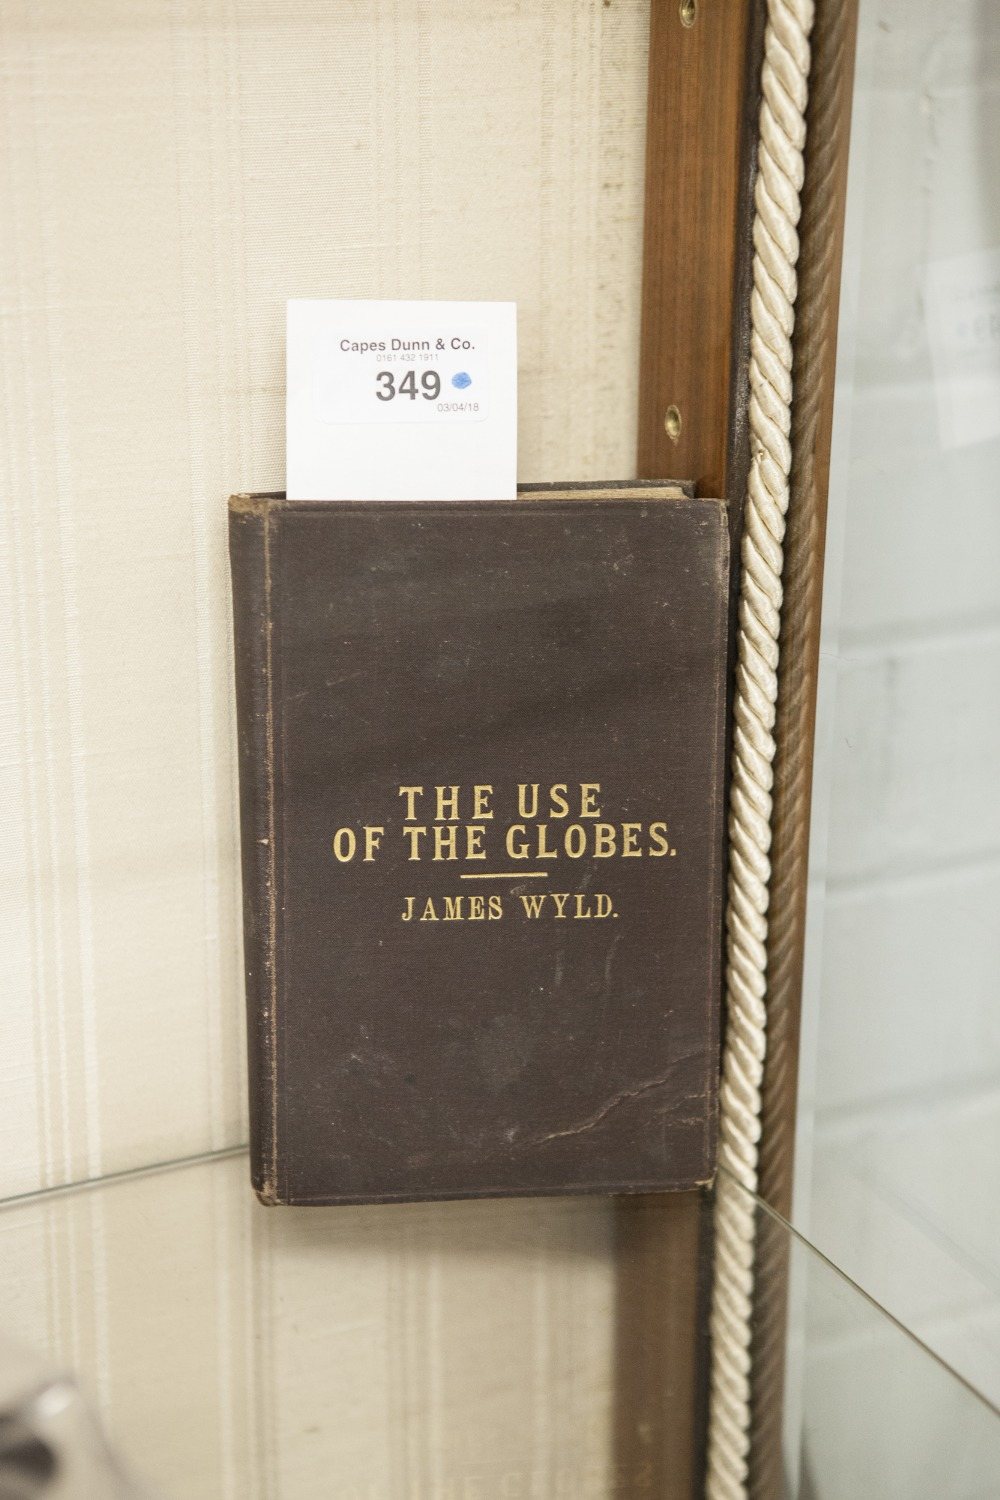 Lot 349 - JAMES WYLD, A FAMILIAR AND PRACTICAL TREATISE ON THE USE OF THE GLOBES. Terrestrial and Celestial